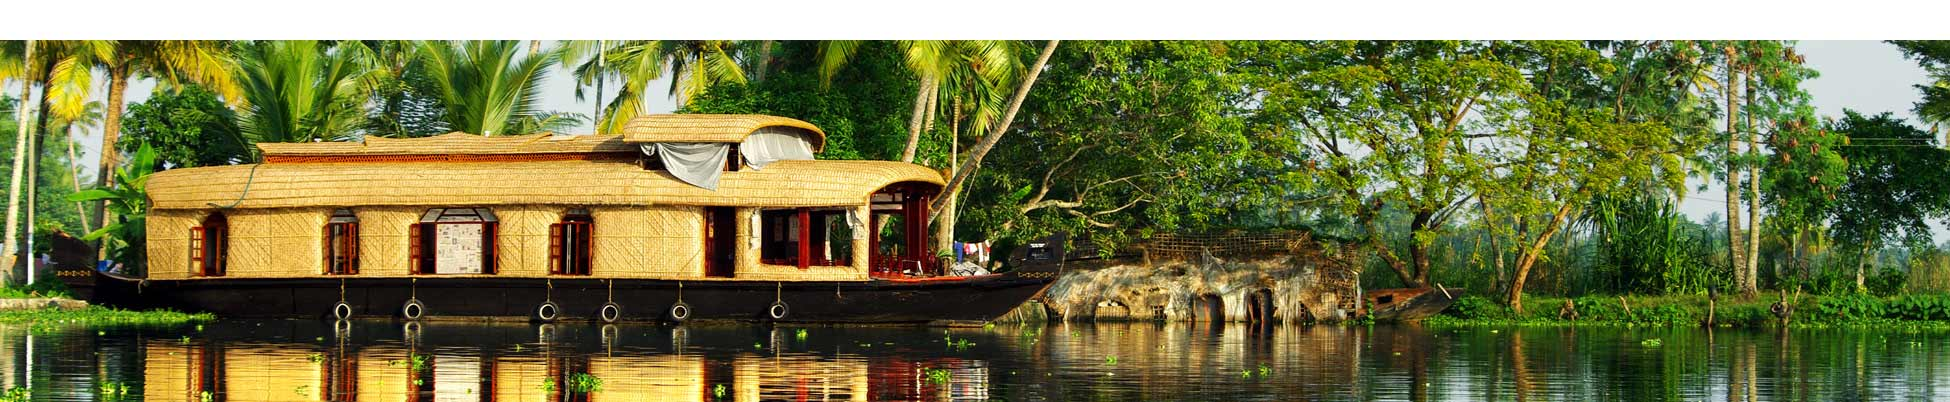 Backwaters en Inde du Sud